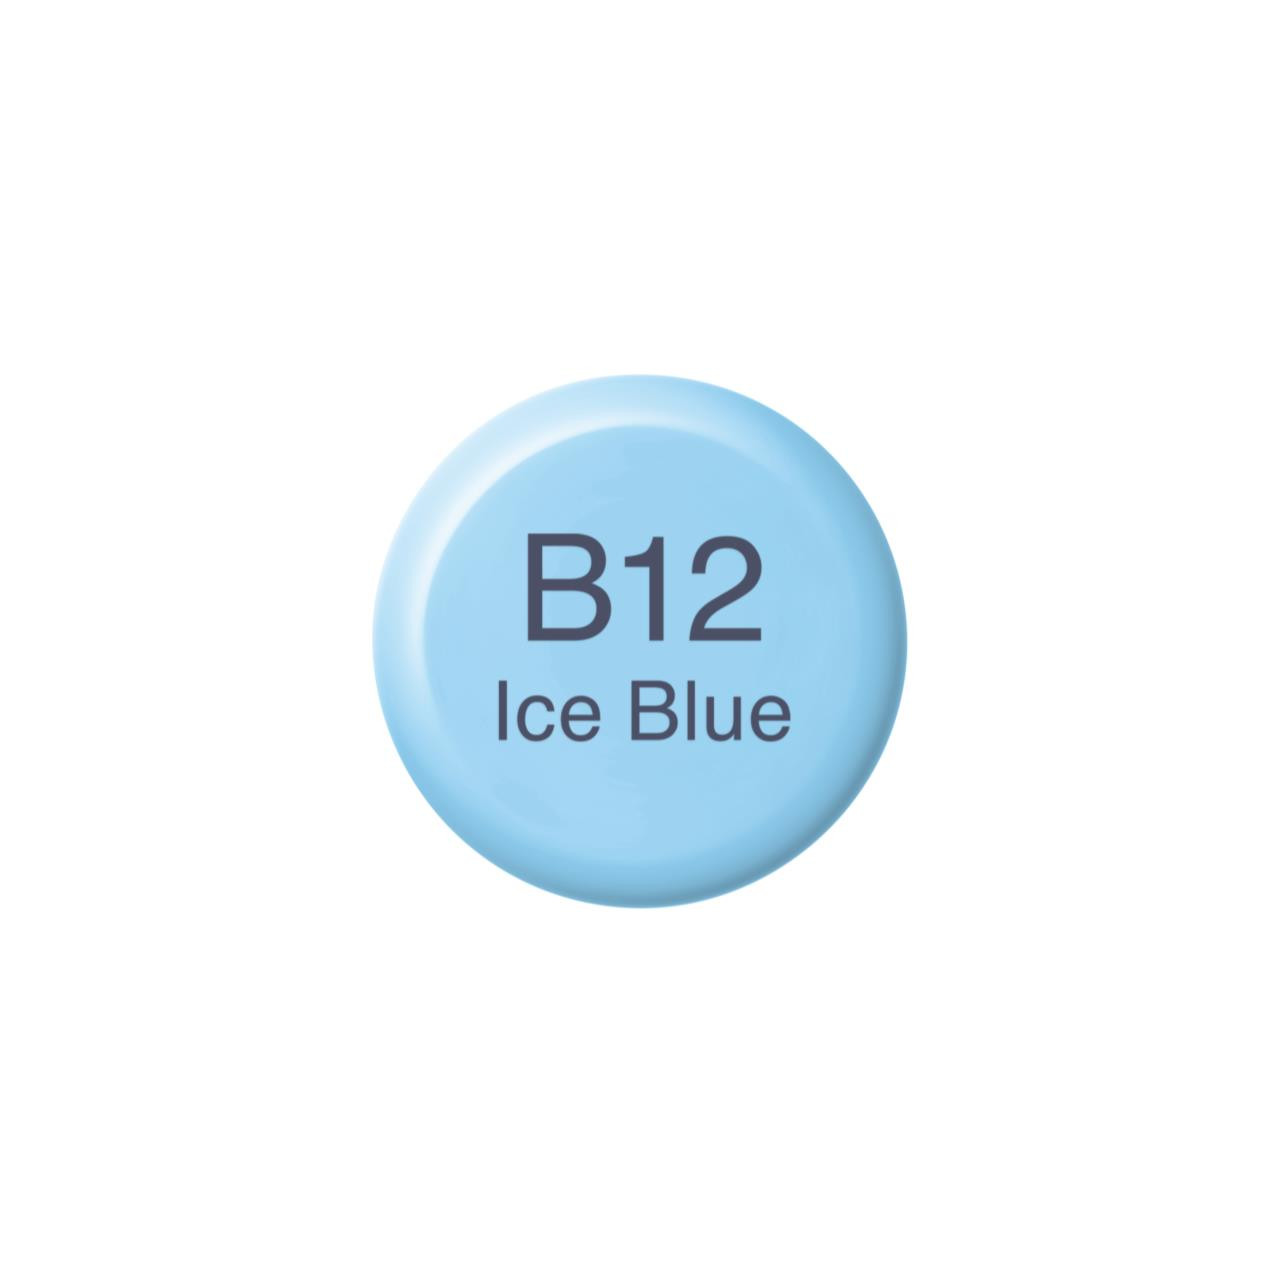 B12 Ice Blue, Copic Ink - 4511338055885